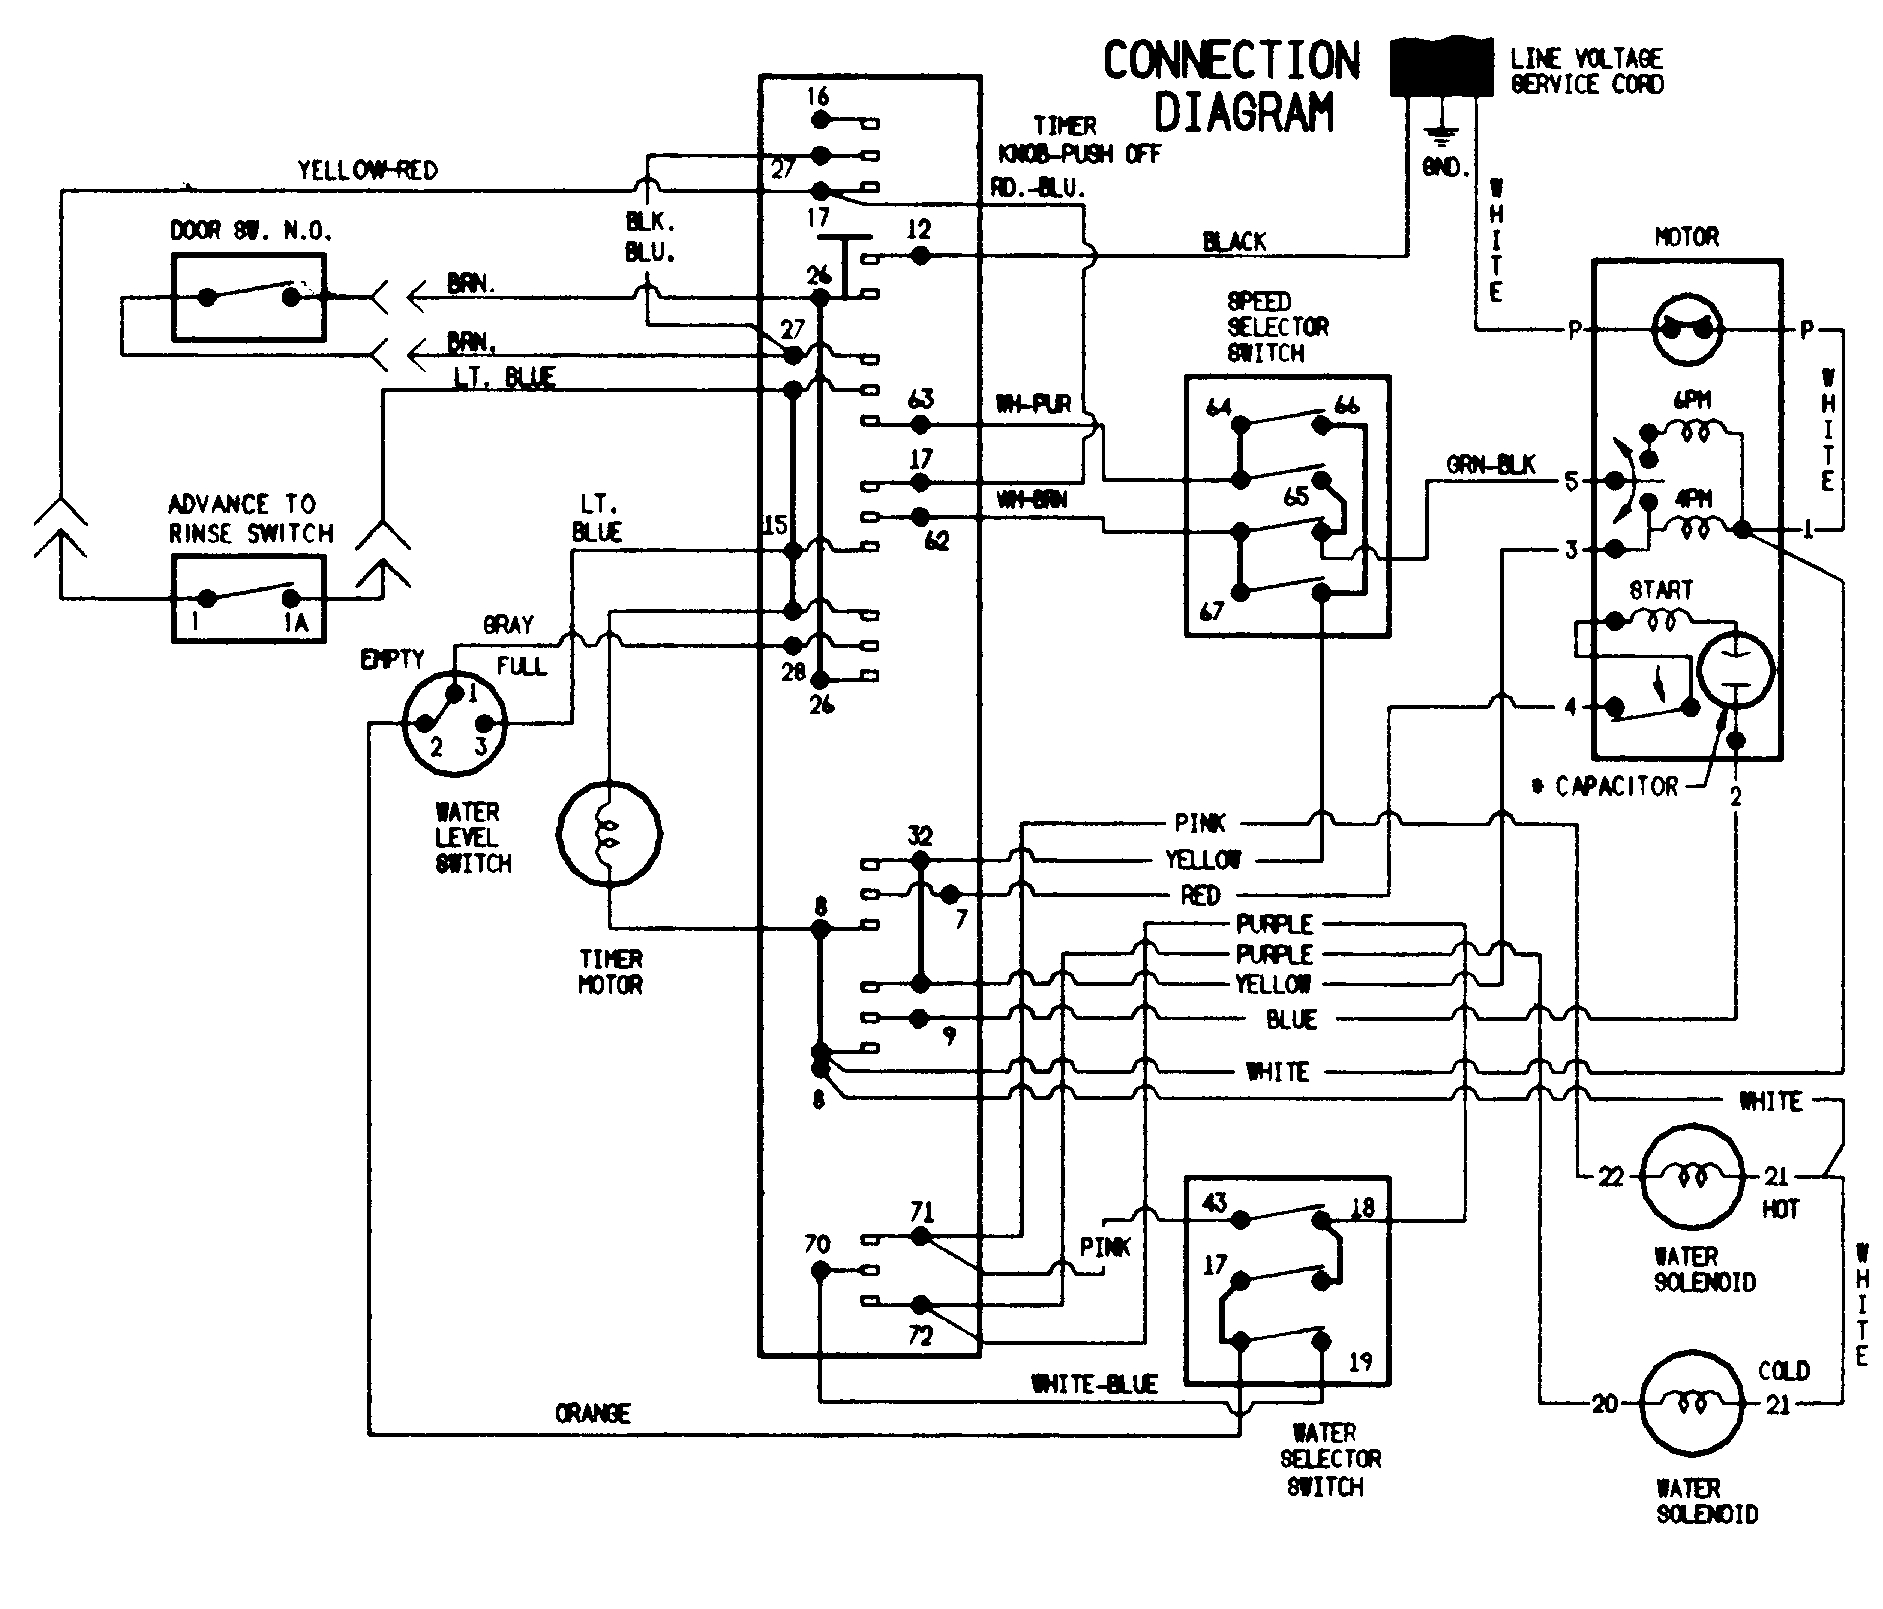 maytag washer wiring schematic Download-Maytag model PAV2000AWW residential washers genuine parts 5-b